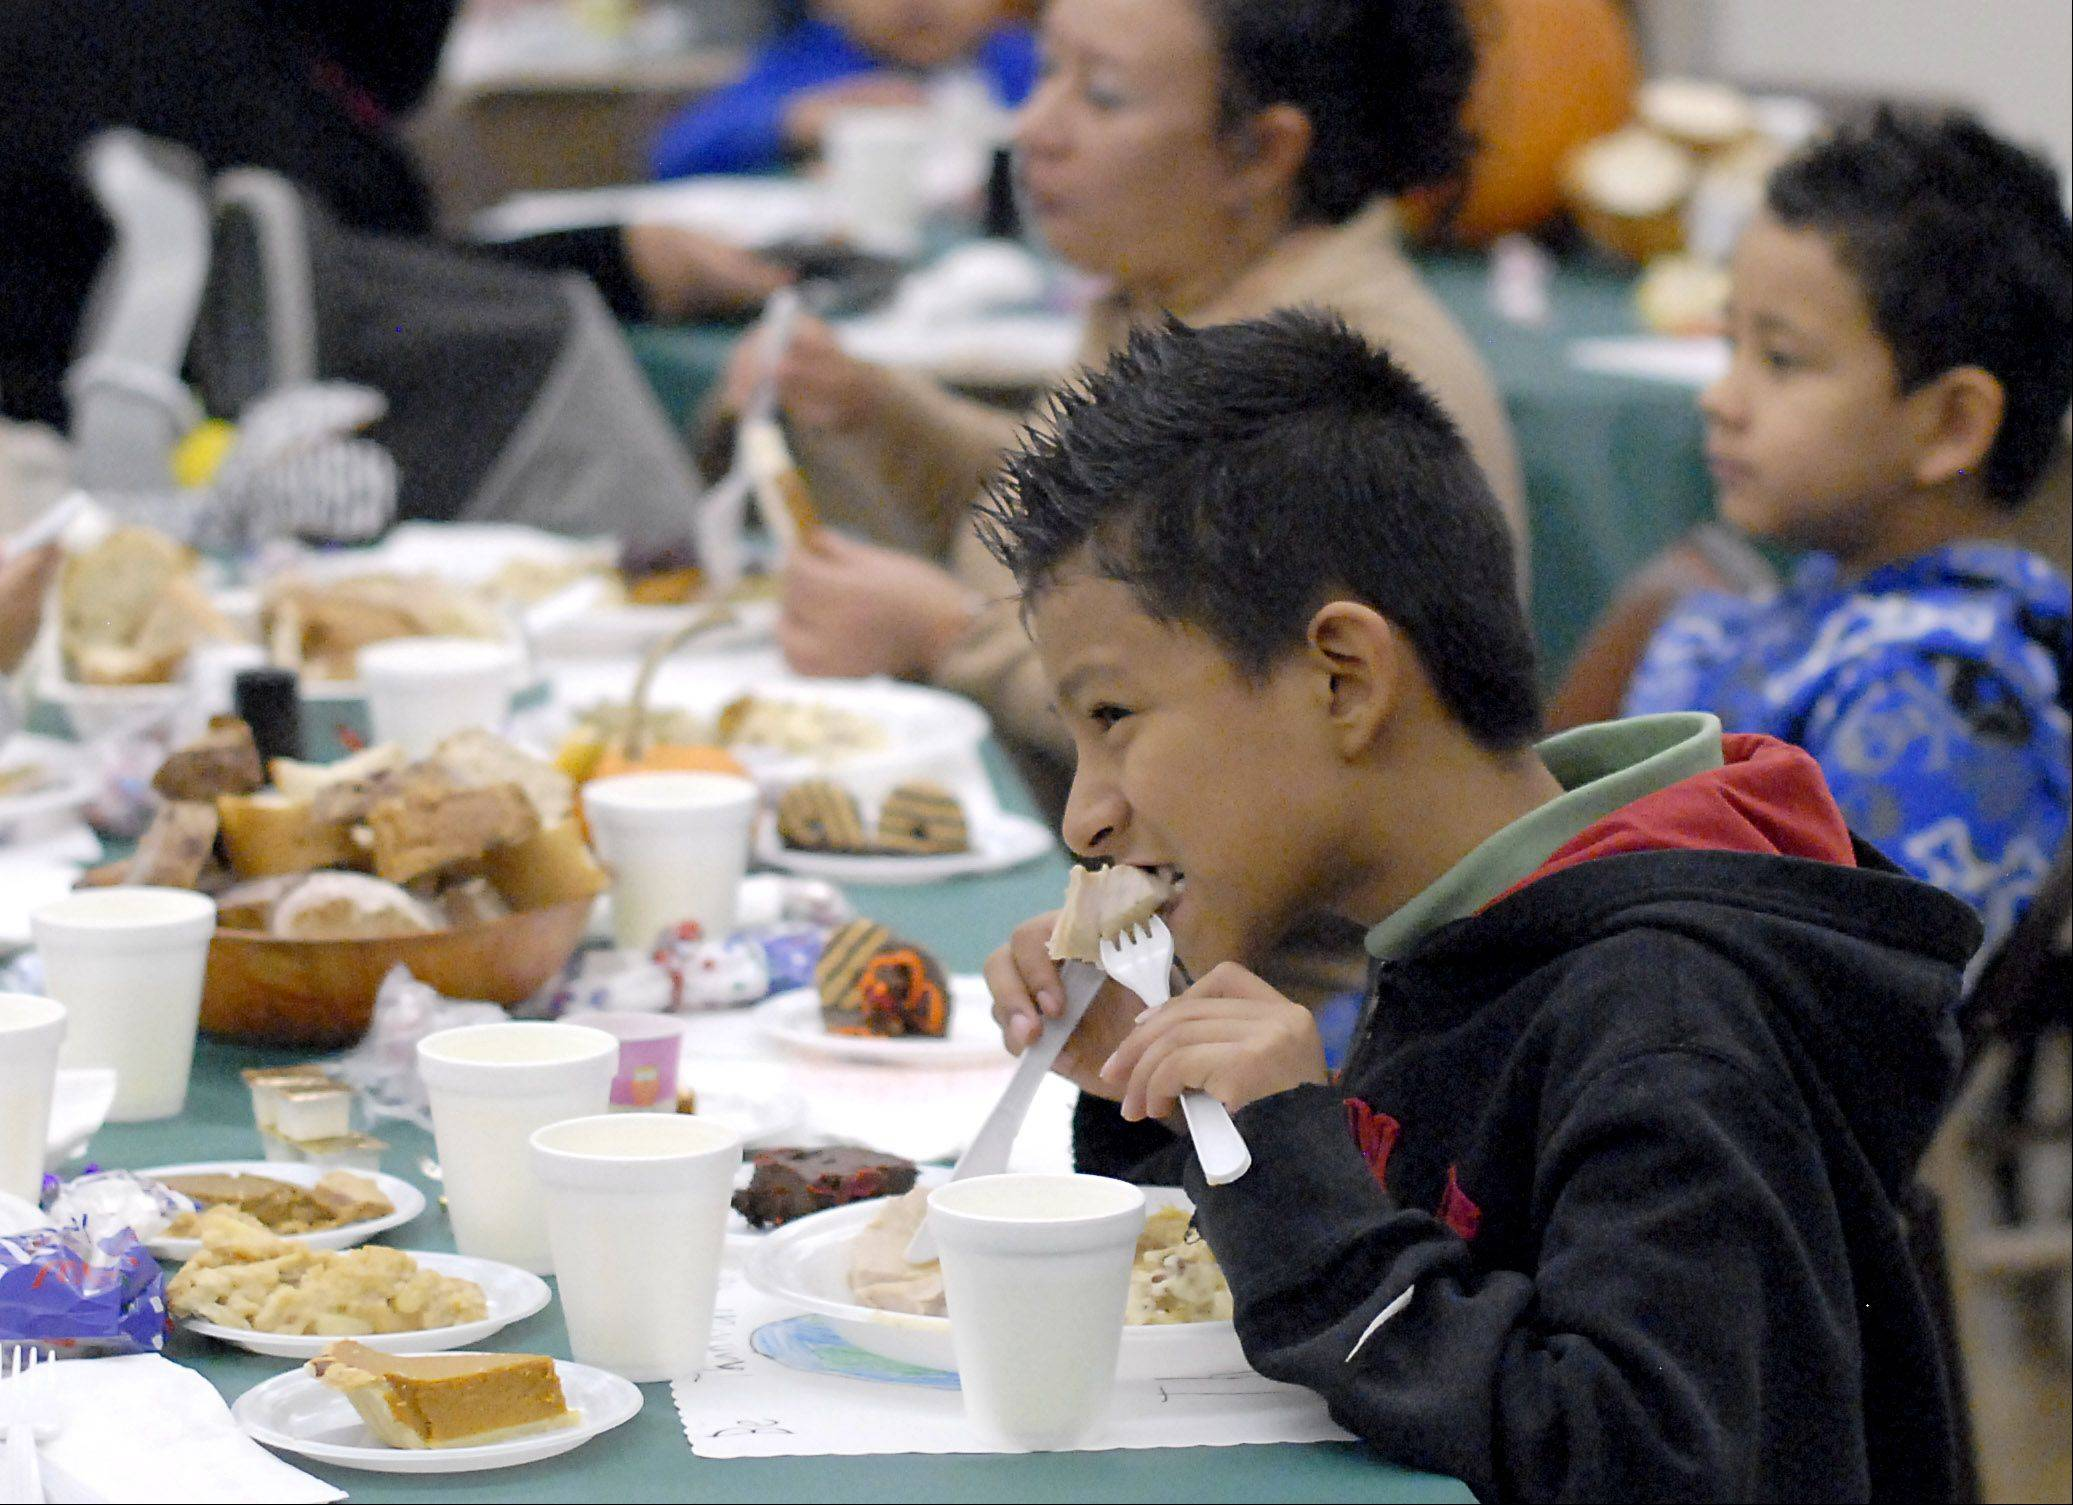 Daniel Lopez, 9, of Elgin chows down on a slice of turkey at Elgin�s fourth annual community dinner held Thursday for the first time at the First United Methodist Church. This is the third year his family has attended the gathering.